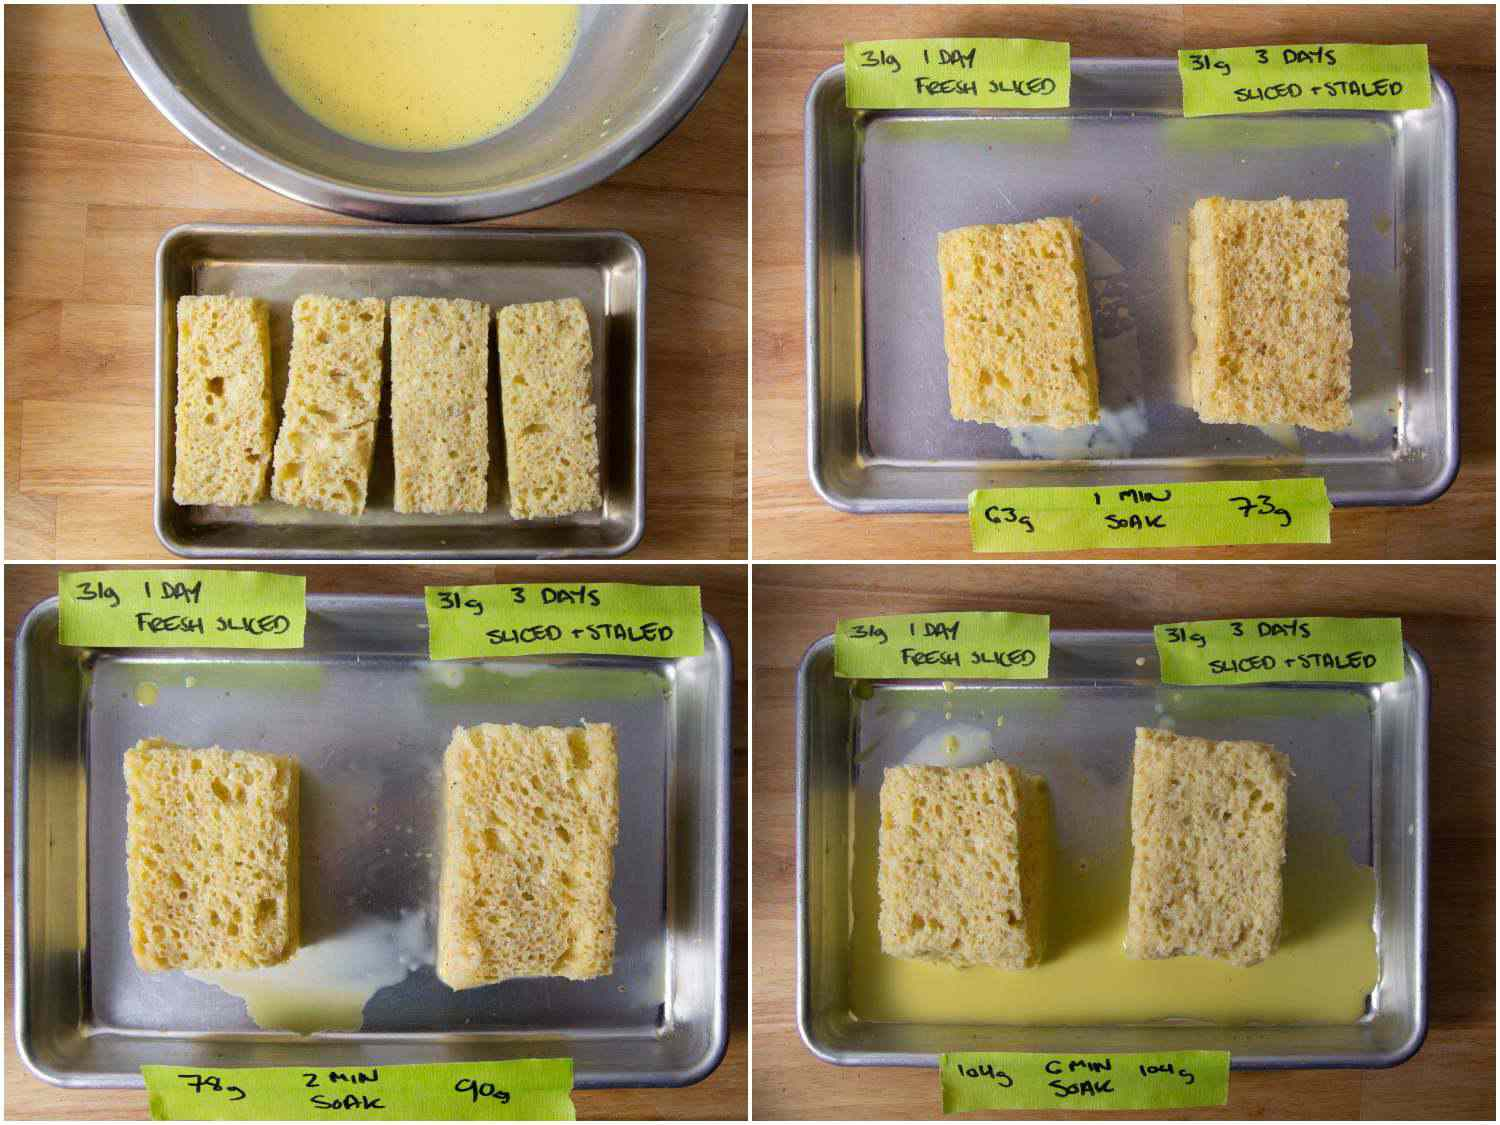 comparing different times for soaking the bread in custard